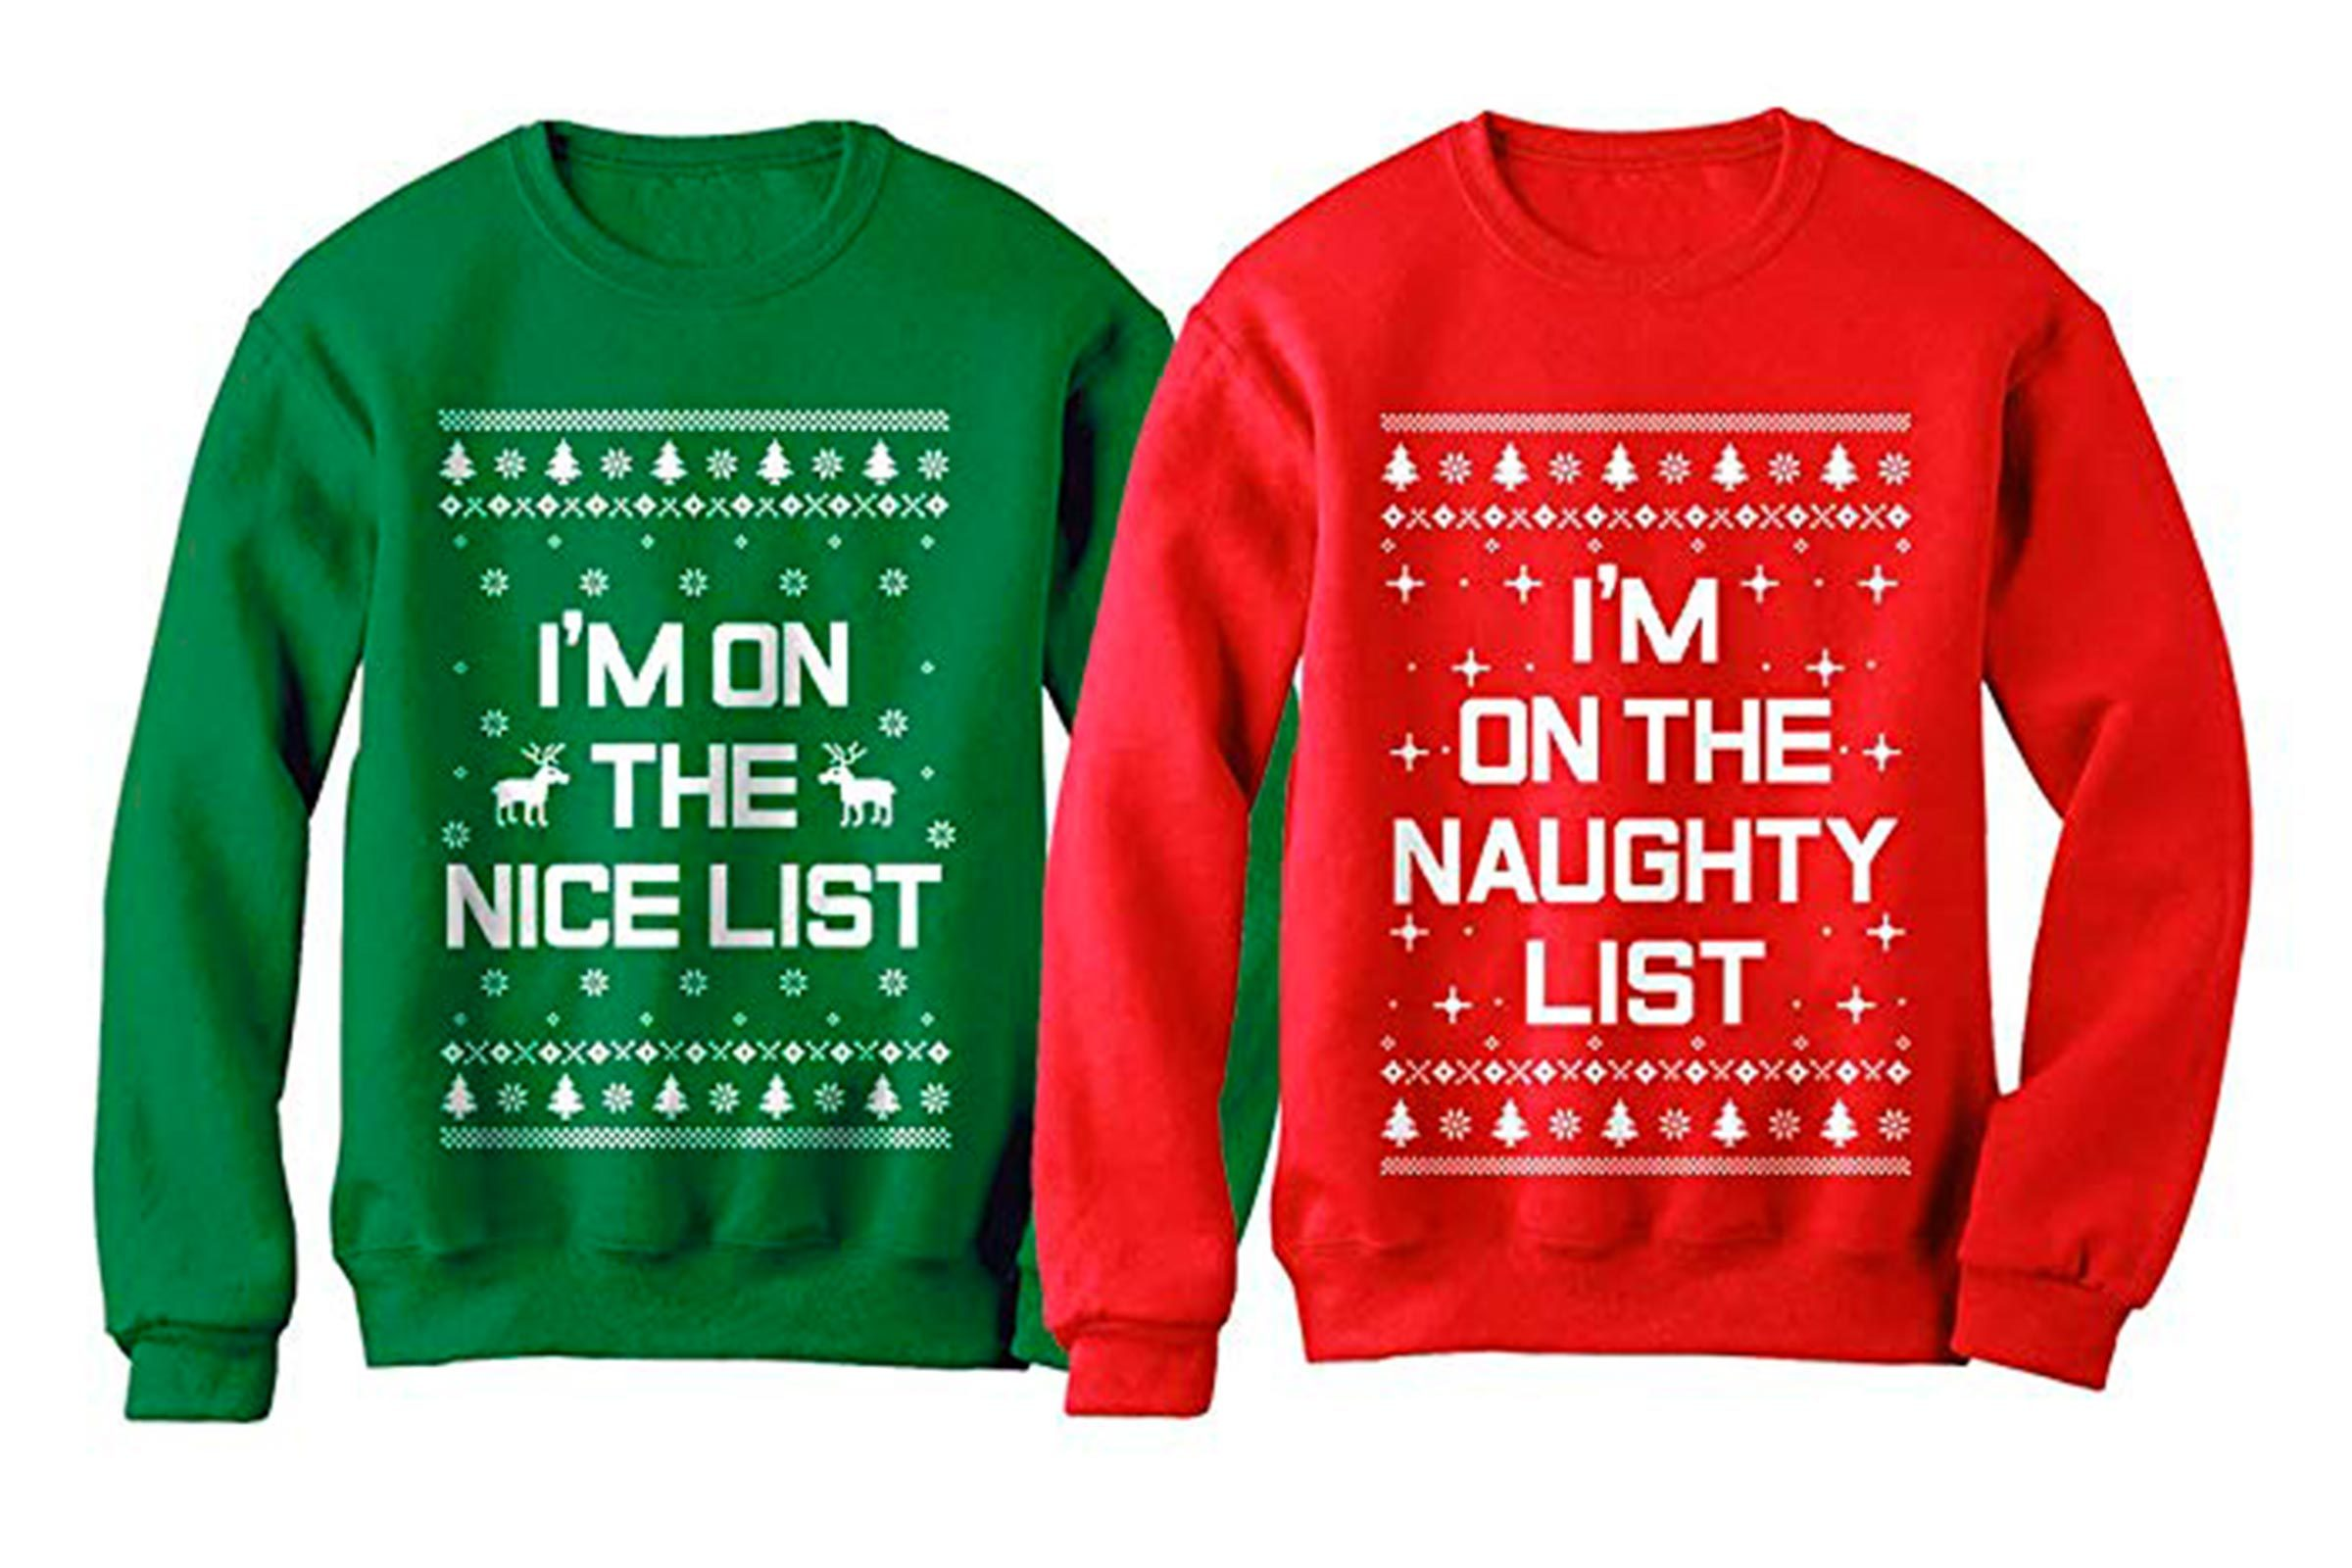 Best Ugly Christmas Sweater.The Best Funny Ugly Christmas Sweaters You Can Buy